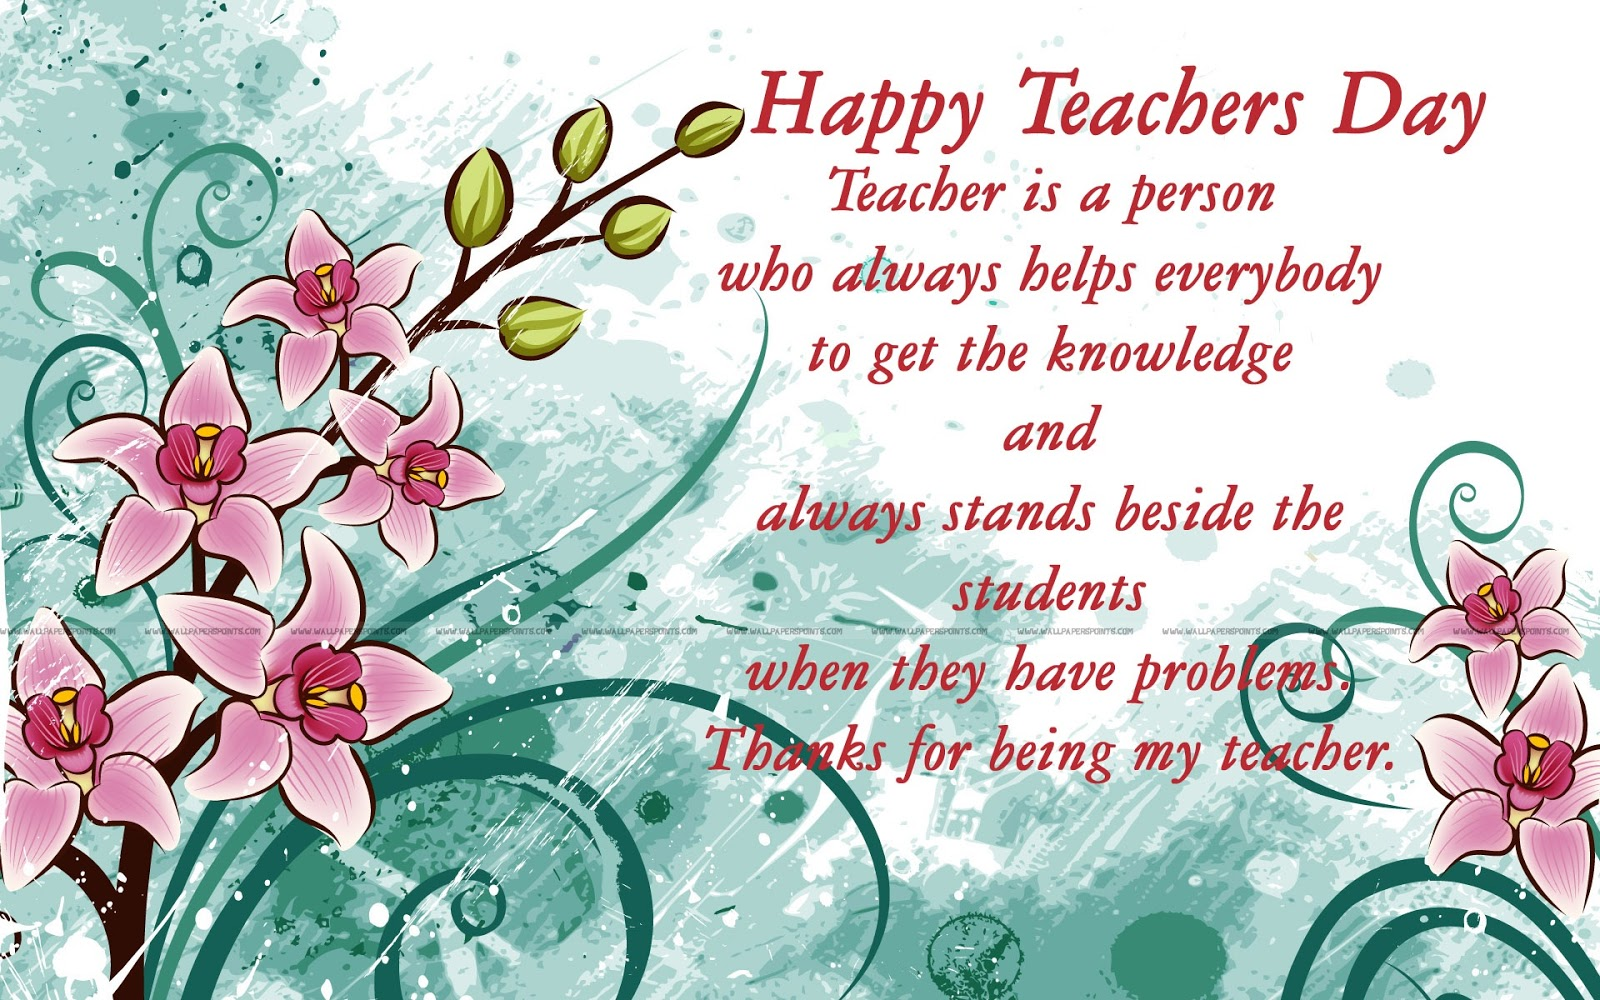 About teachers day